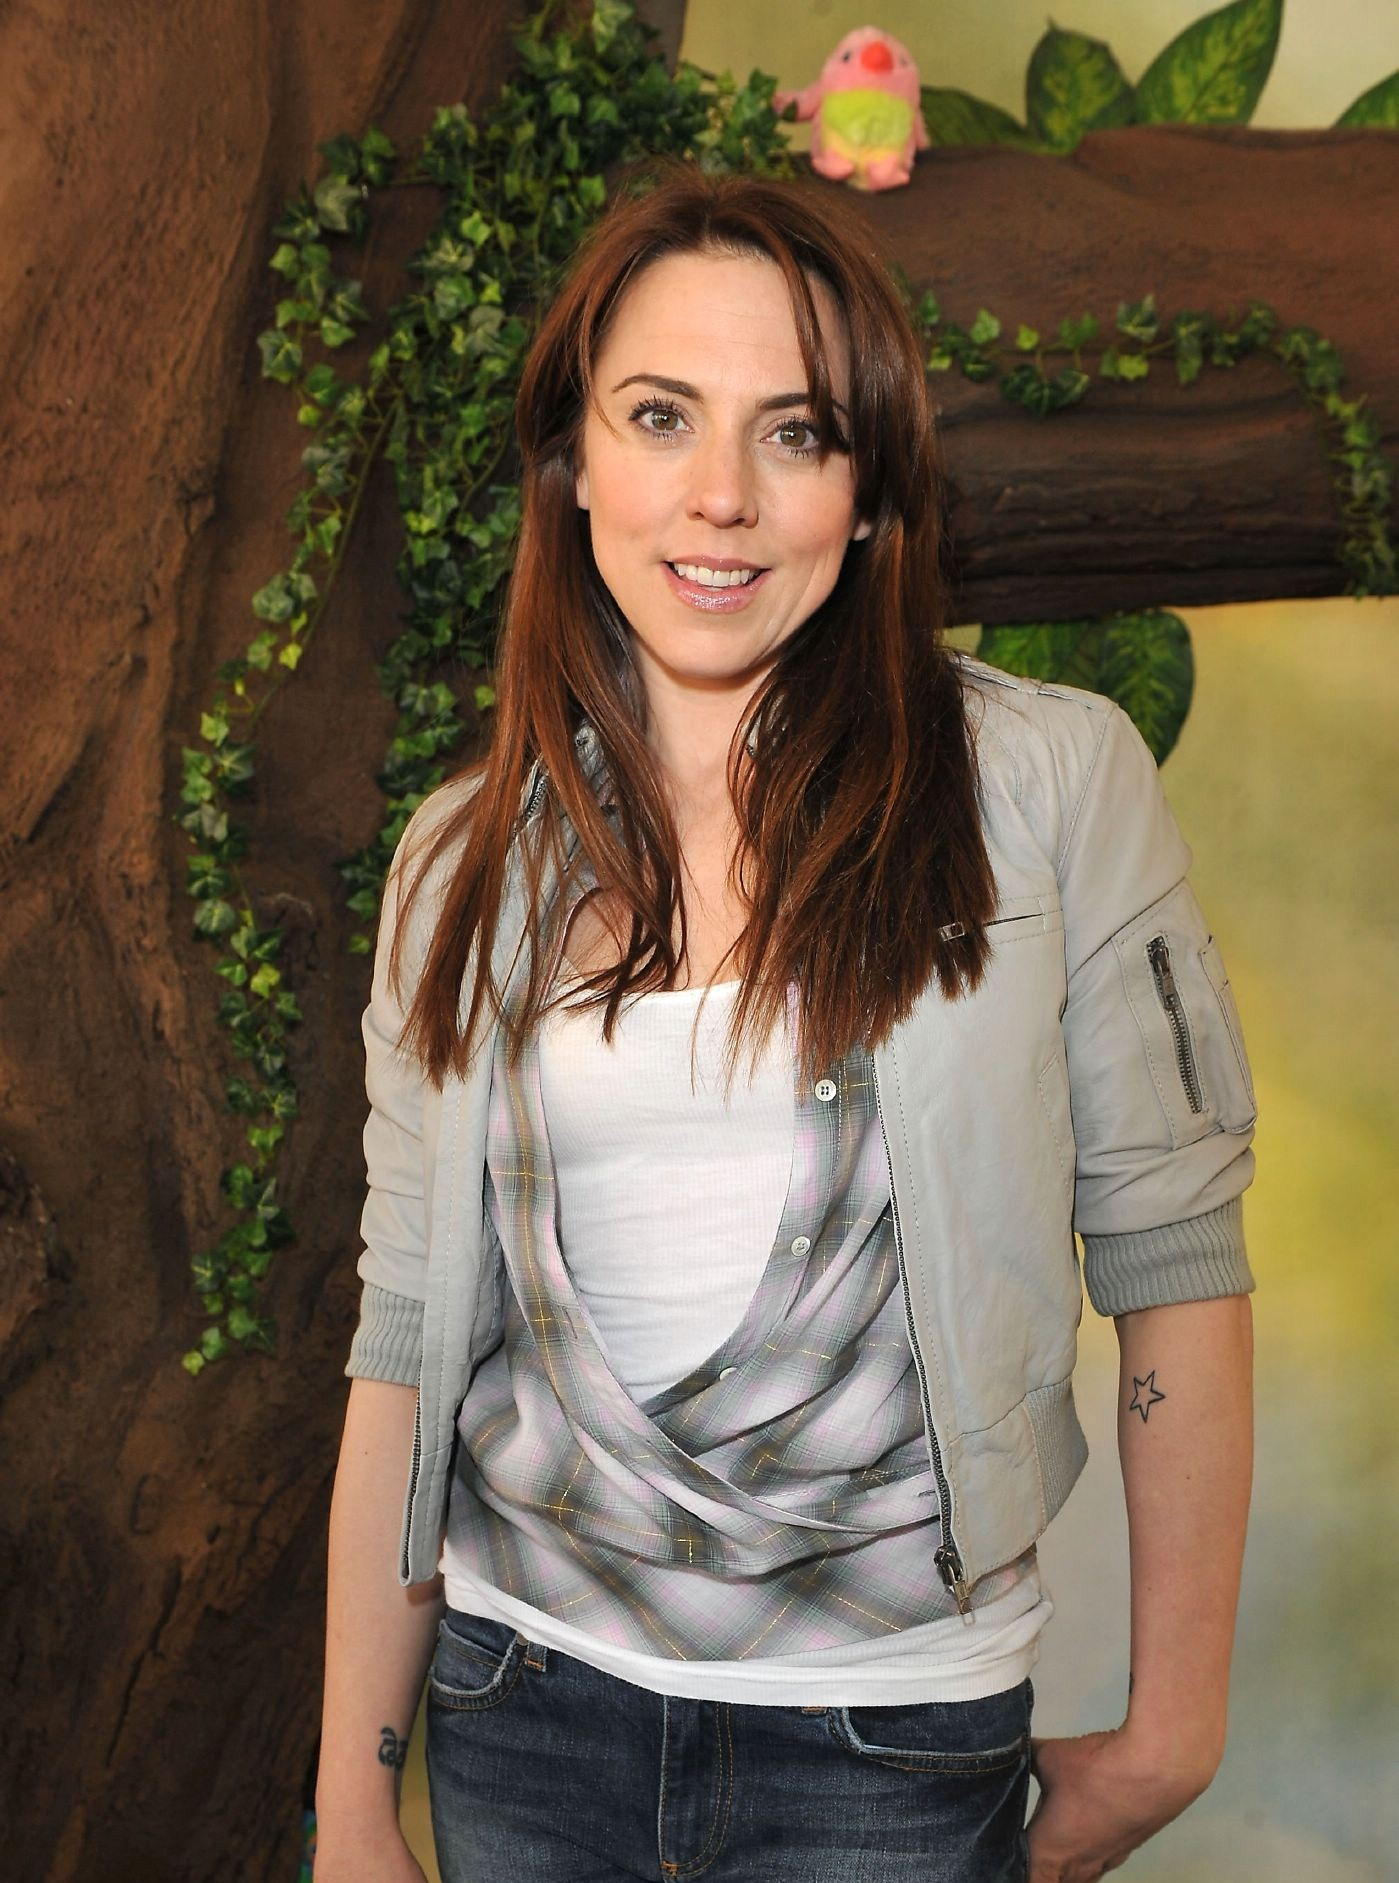 Melanie C photo gallery - page #4 | Celebs-Place.com